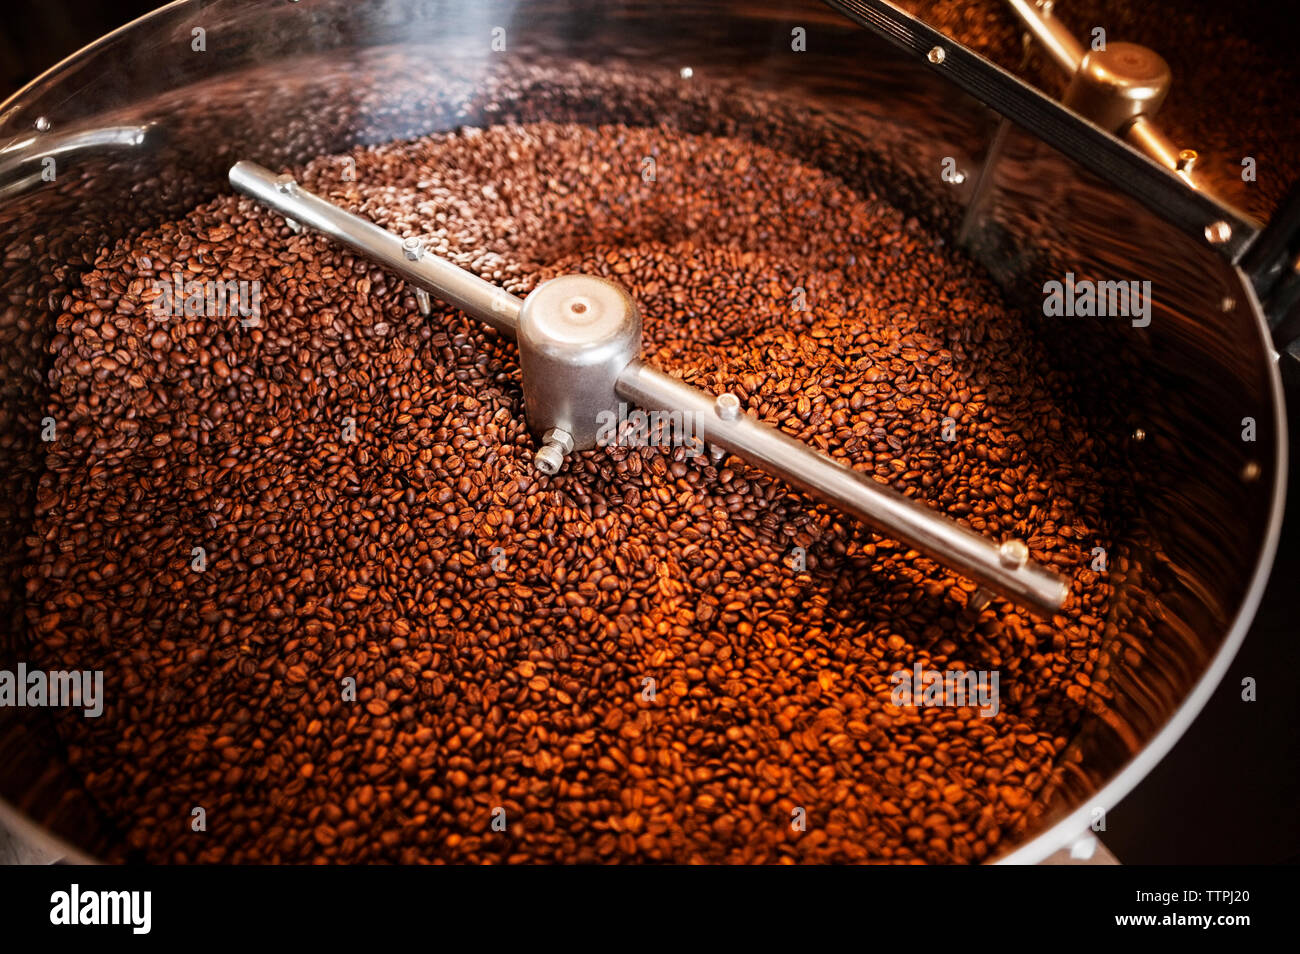 High angle view of coffee beans in coffee roaster - Stock Image